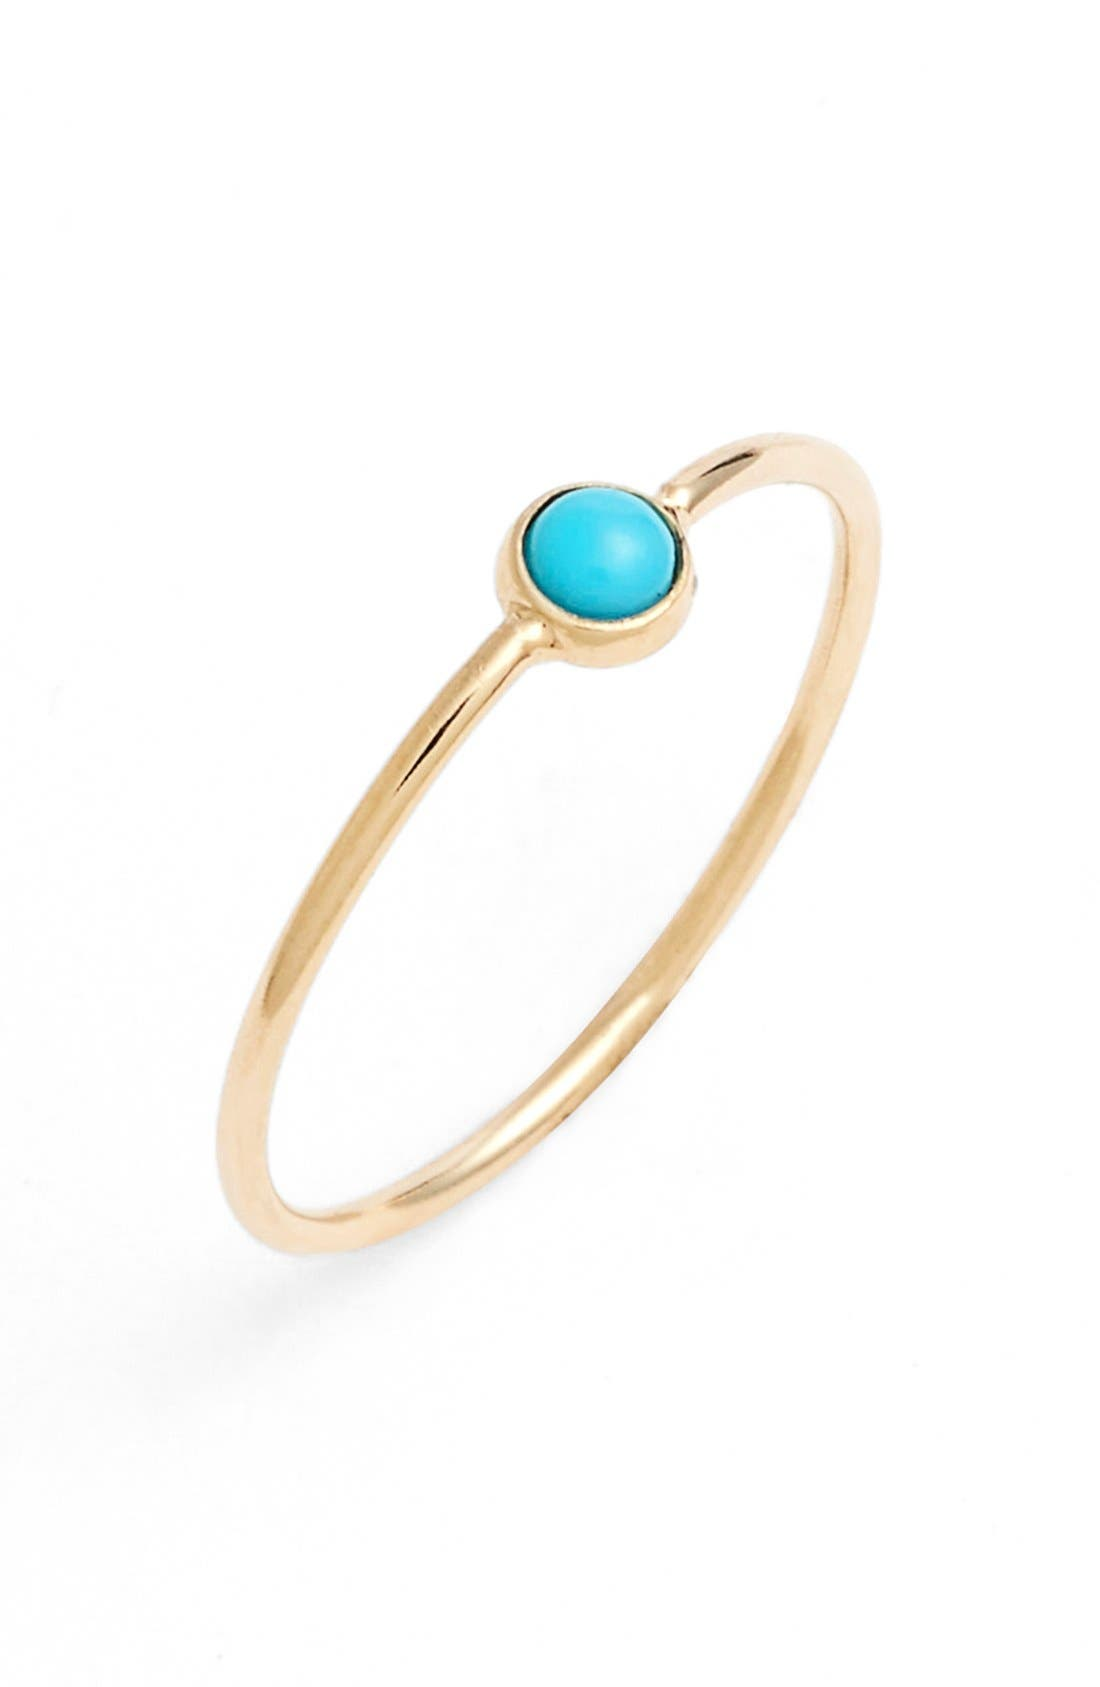 Main Image - Zoë Chicco Turquoise Stacking Ring